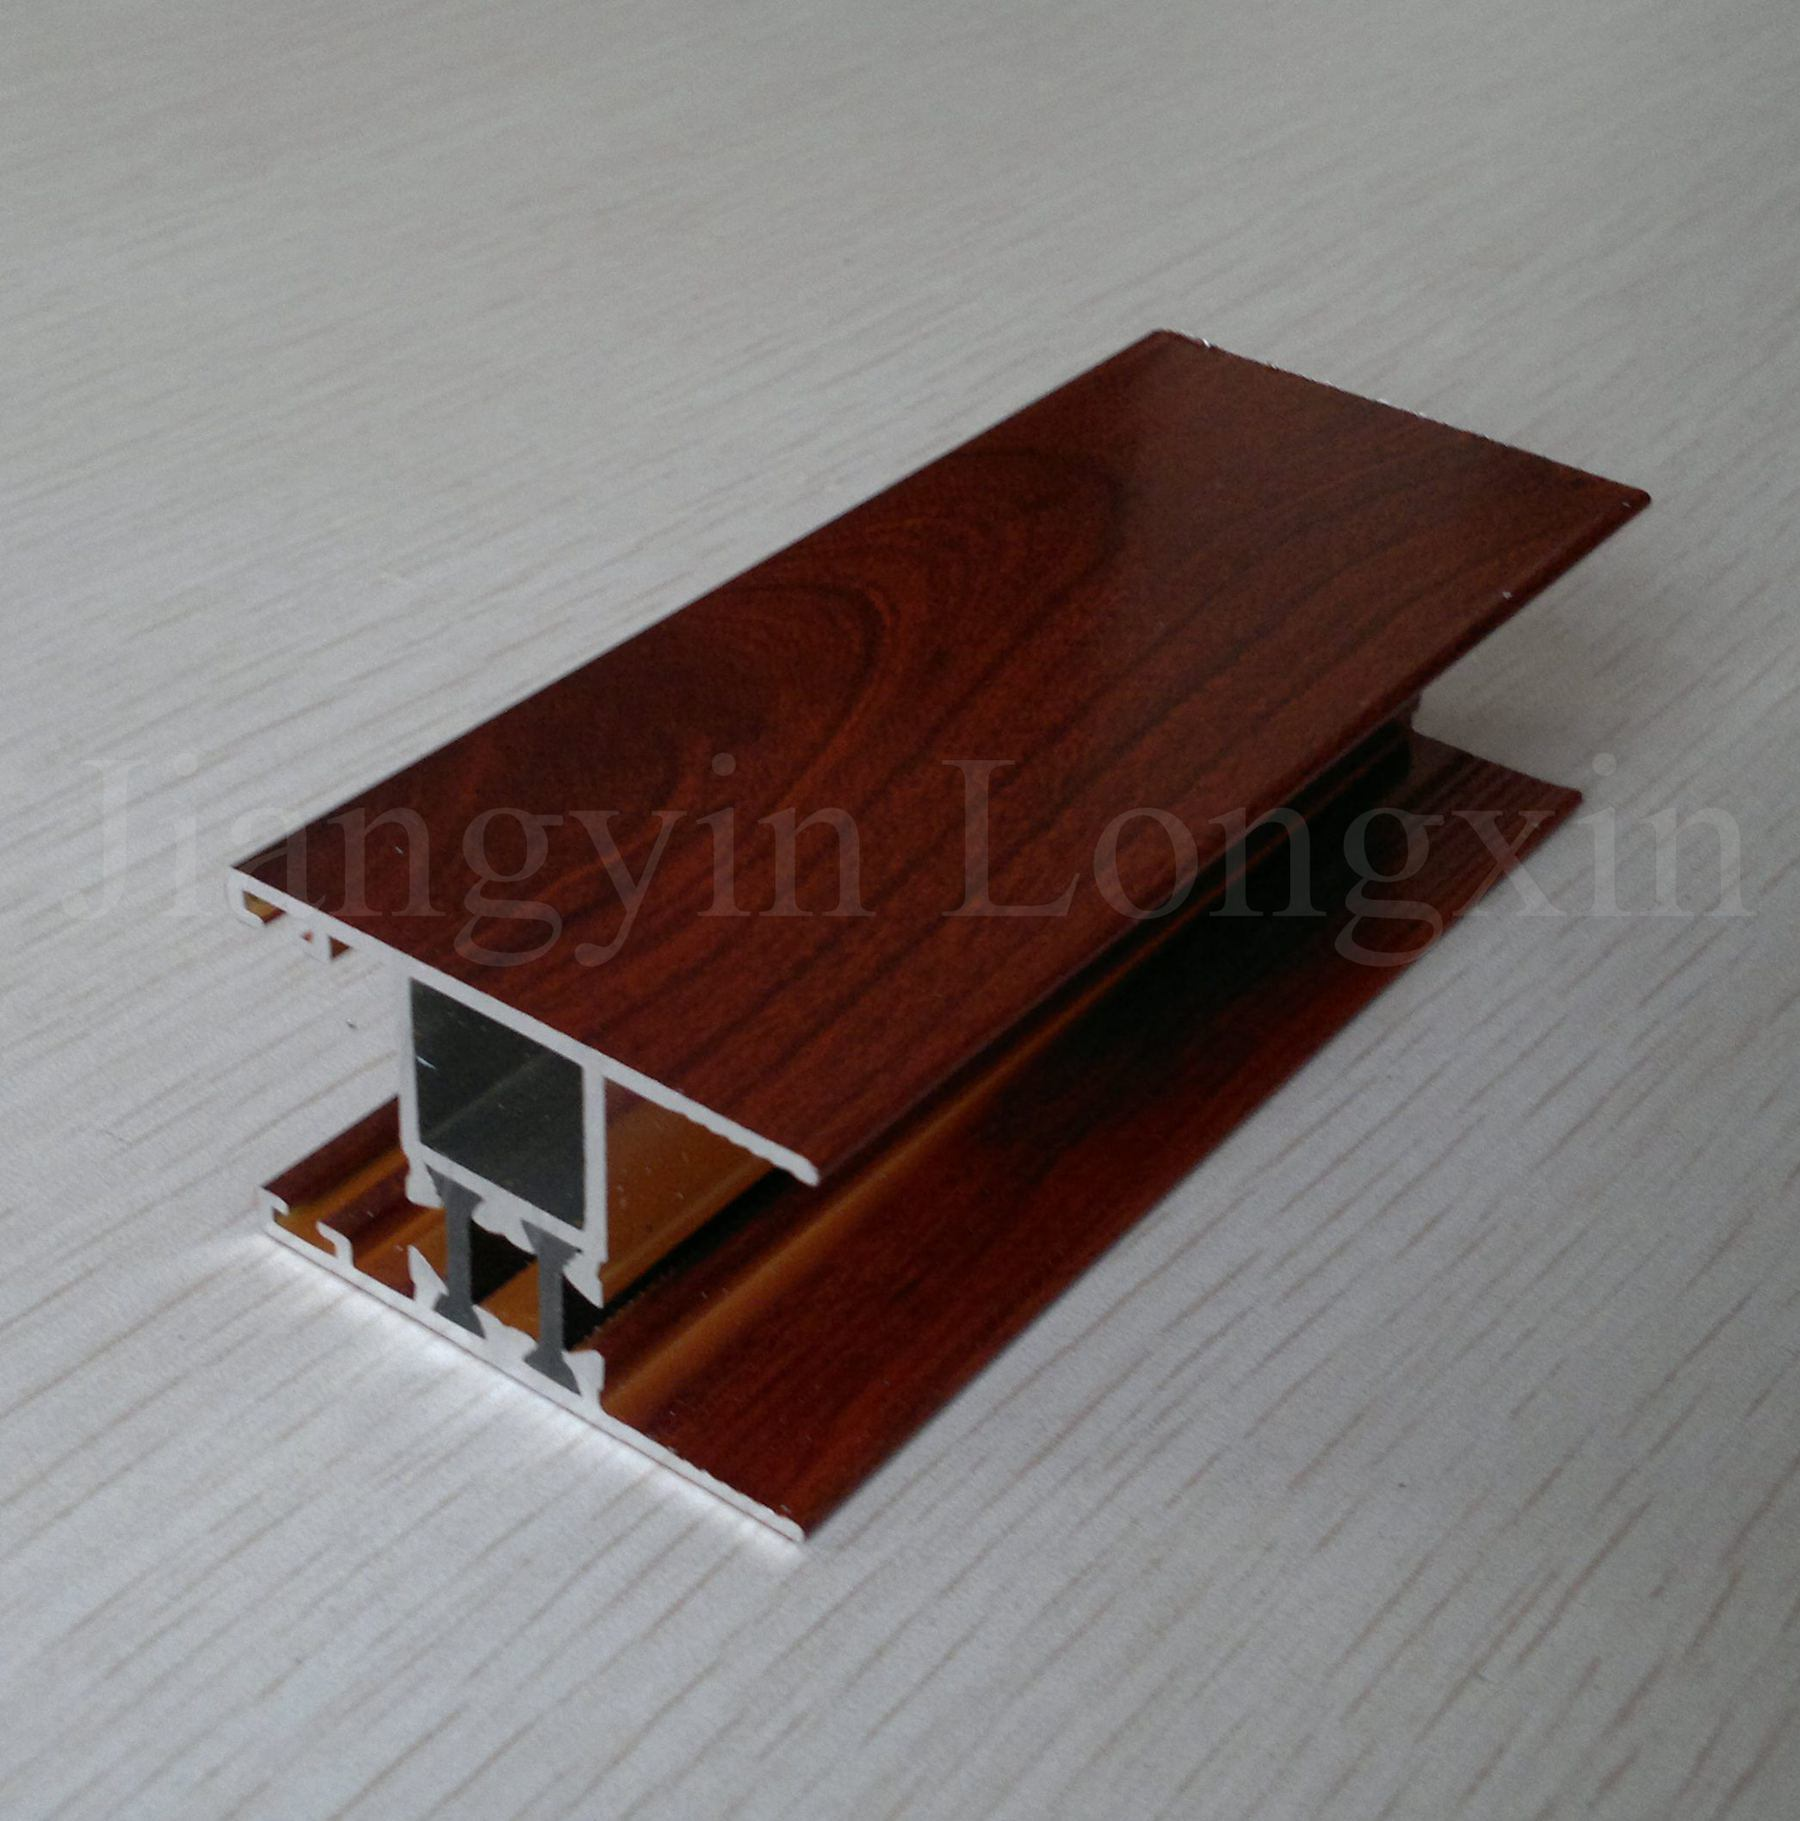 Thermal Break Aluminium Profile for Windows with Wooden Print